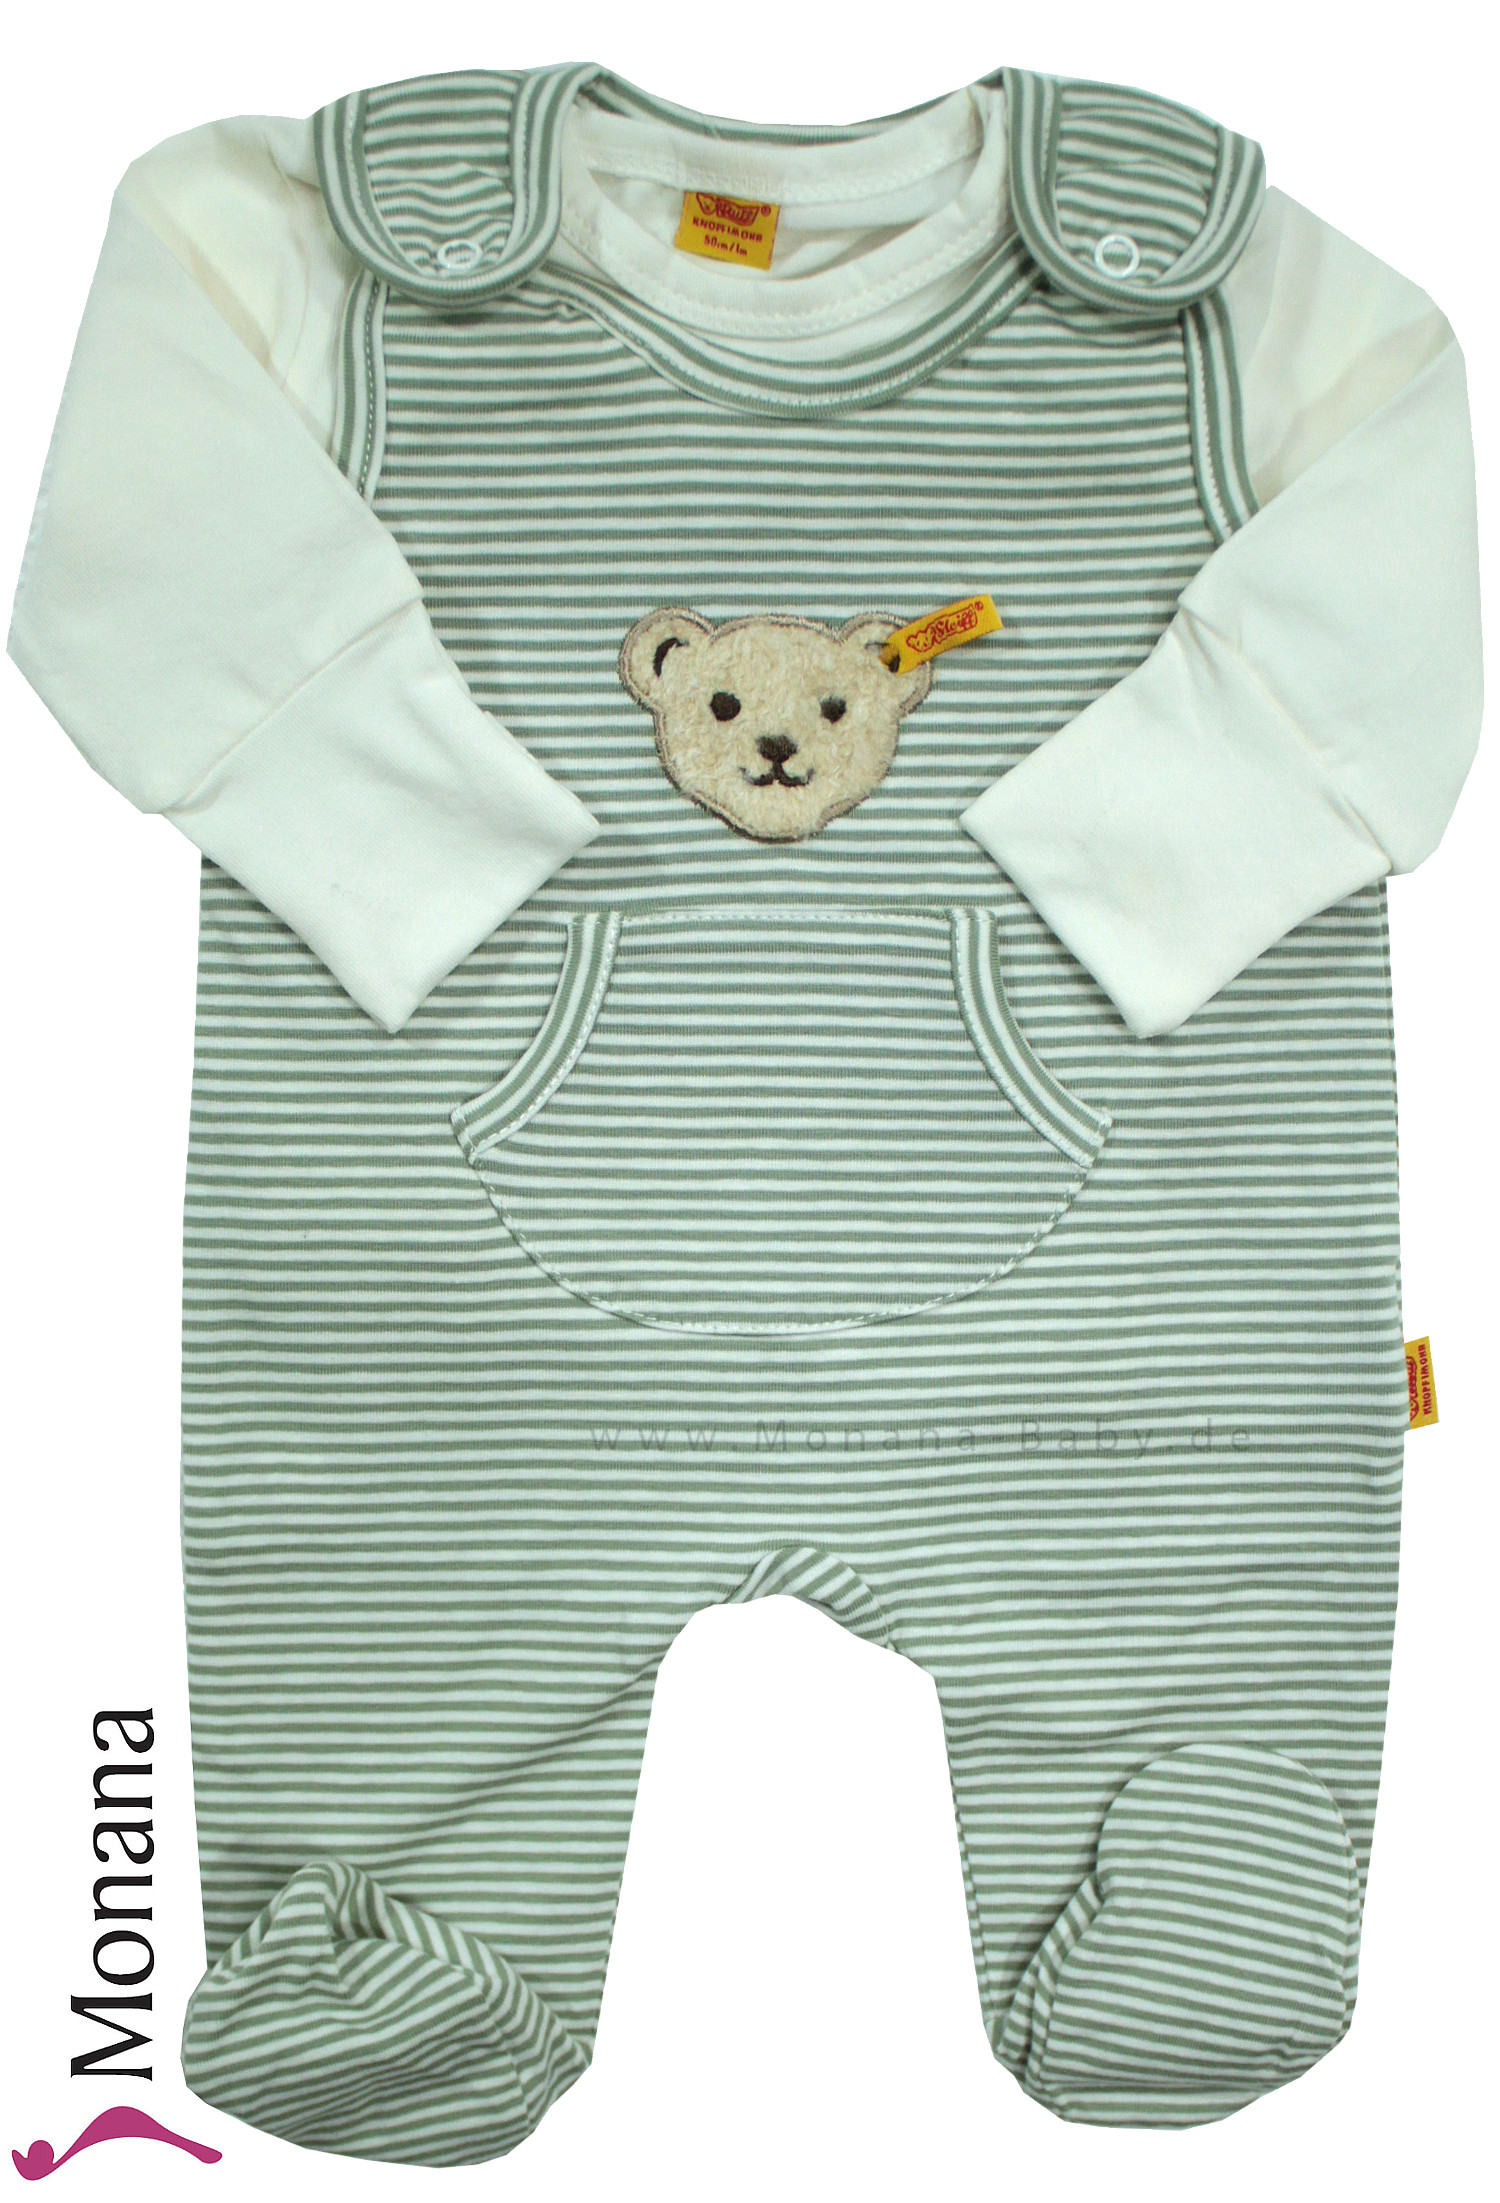 Steiff Collection Baby-Strampler & Baby-Shirt Vintage olive<br>Größe: 50